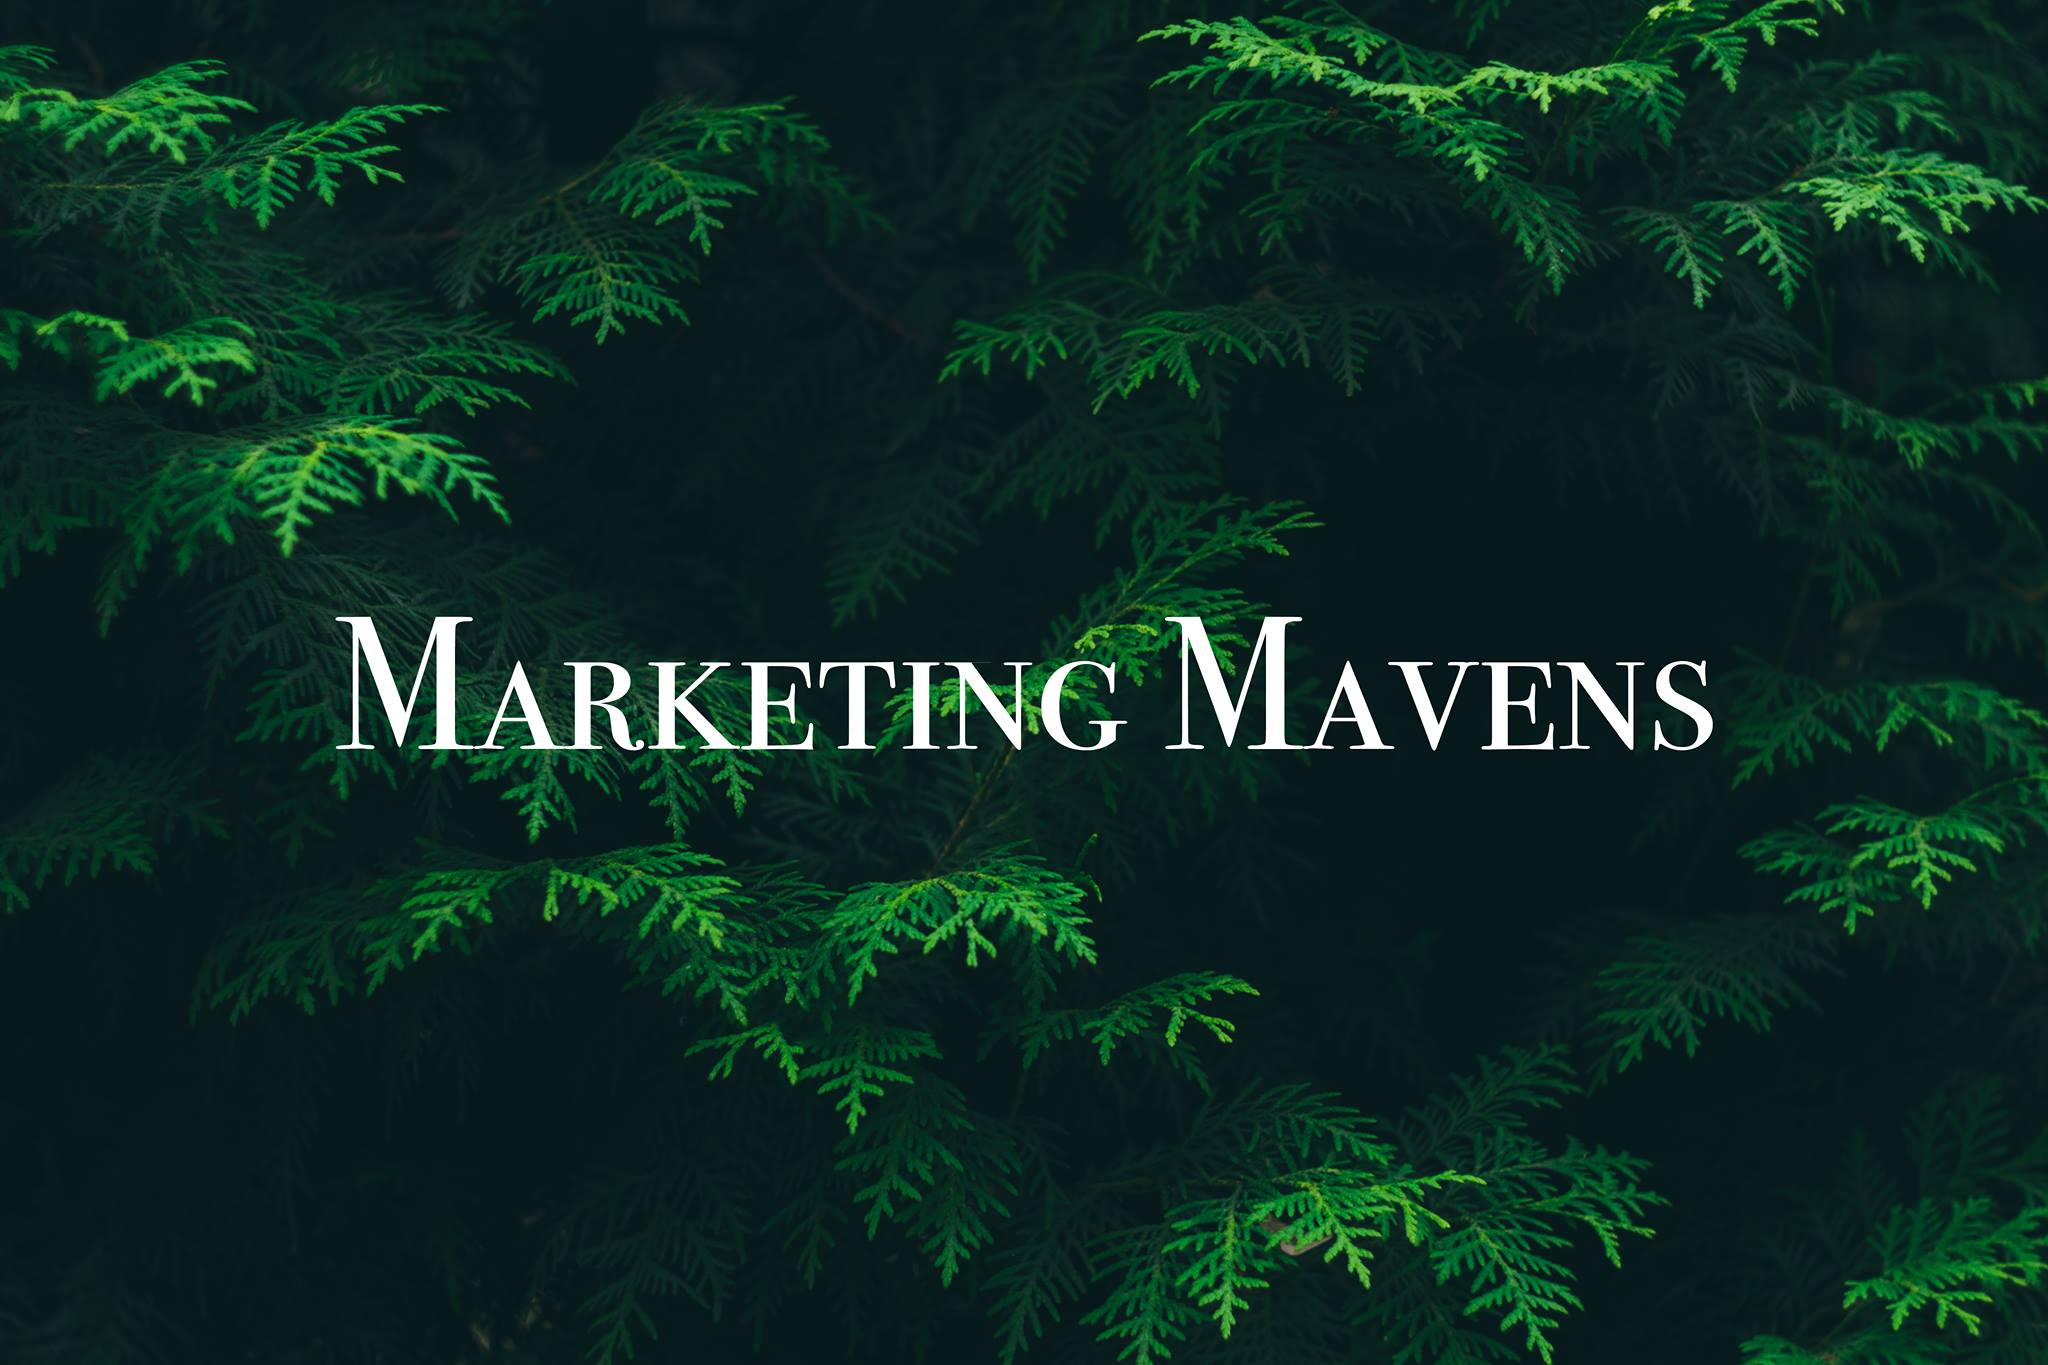 Marketing Mavens: How To Assess If Your Marketing Channels Are Working